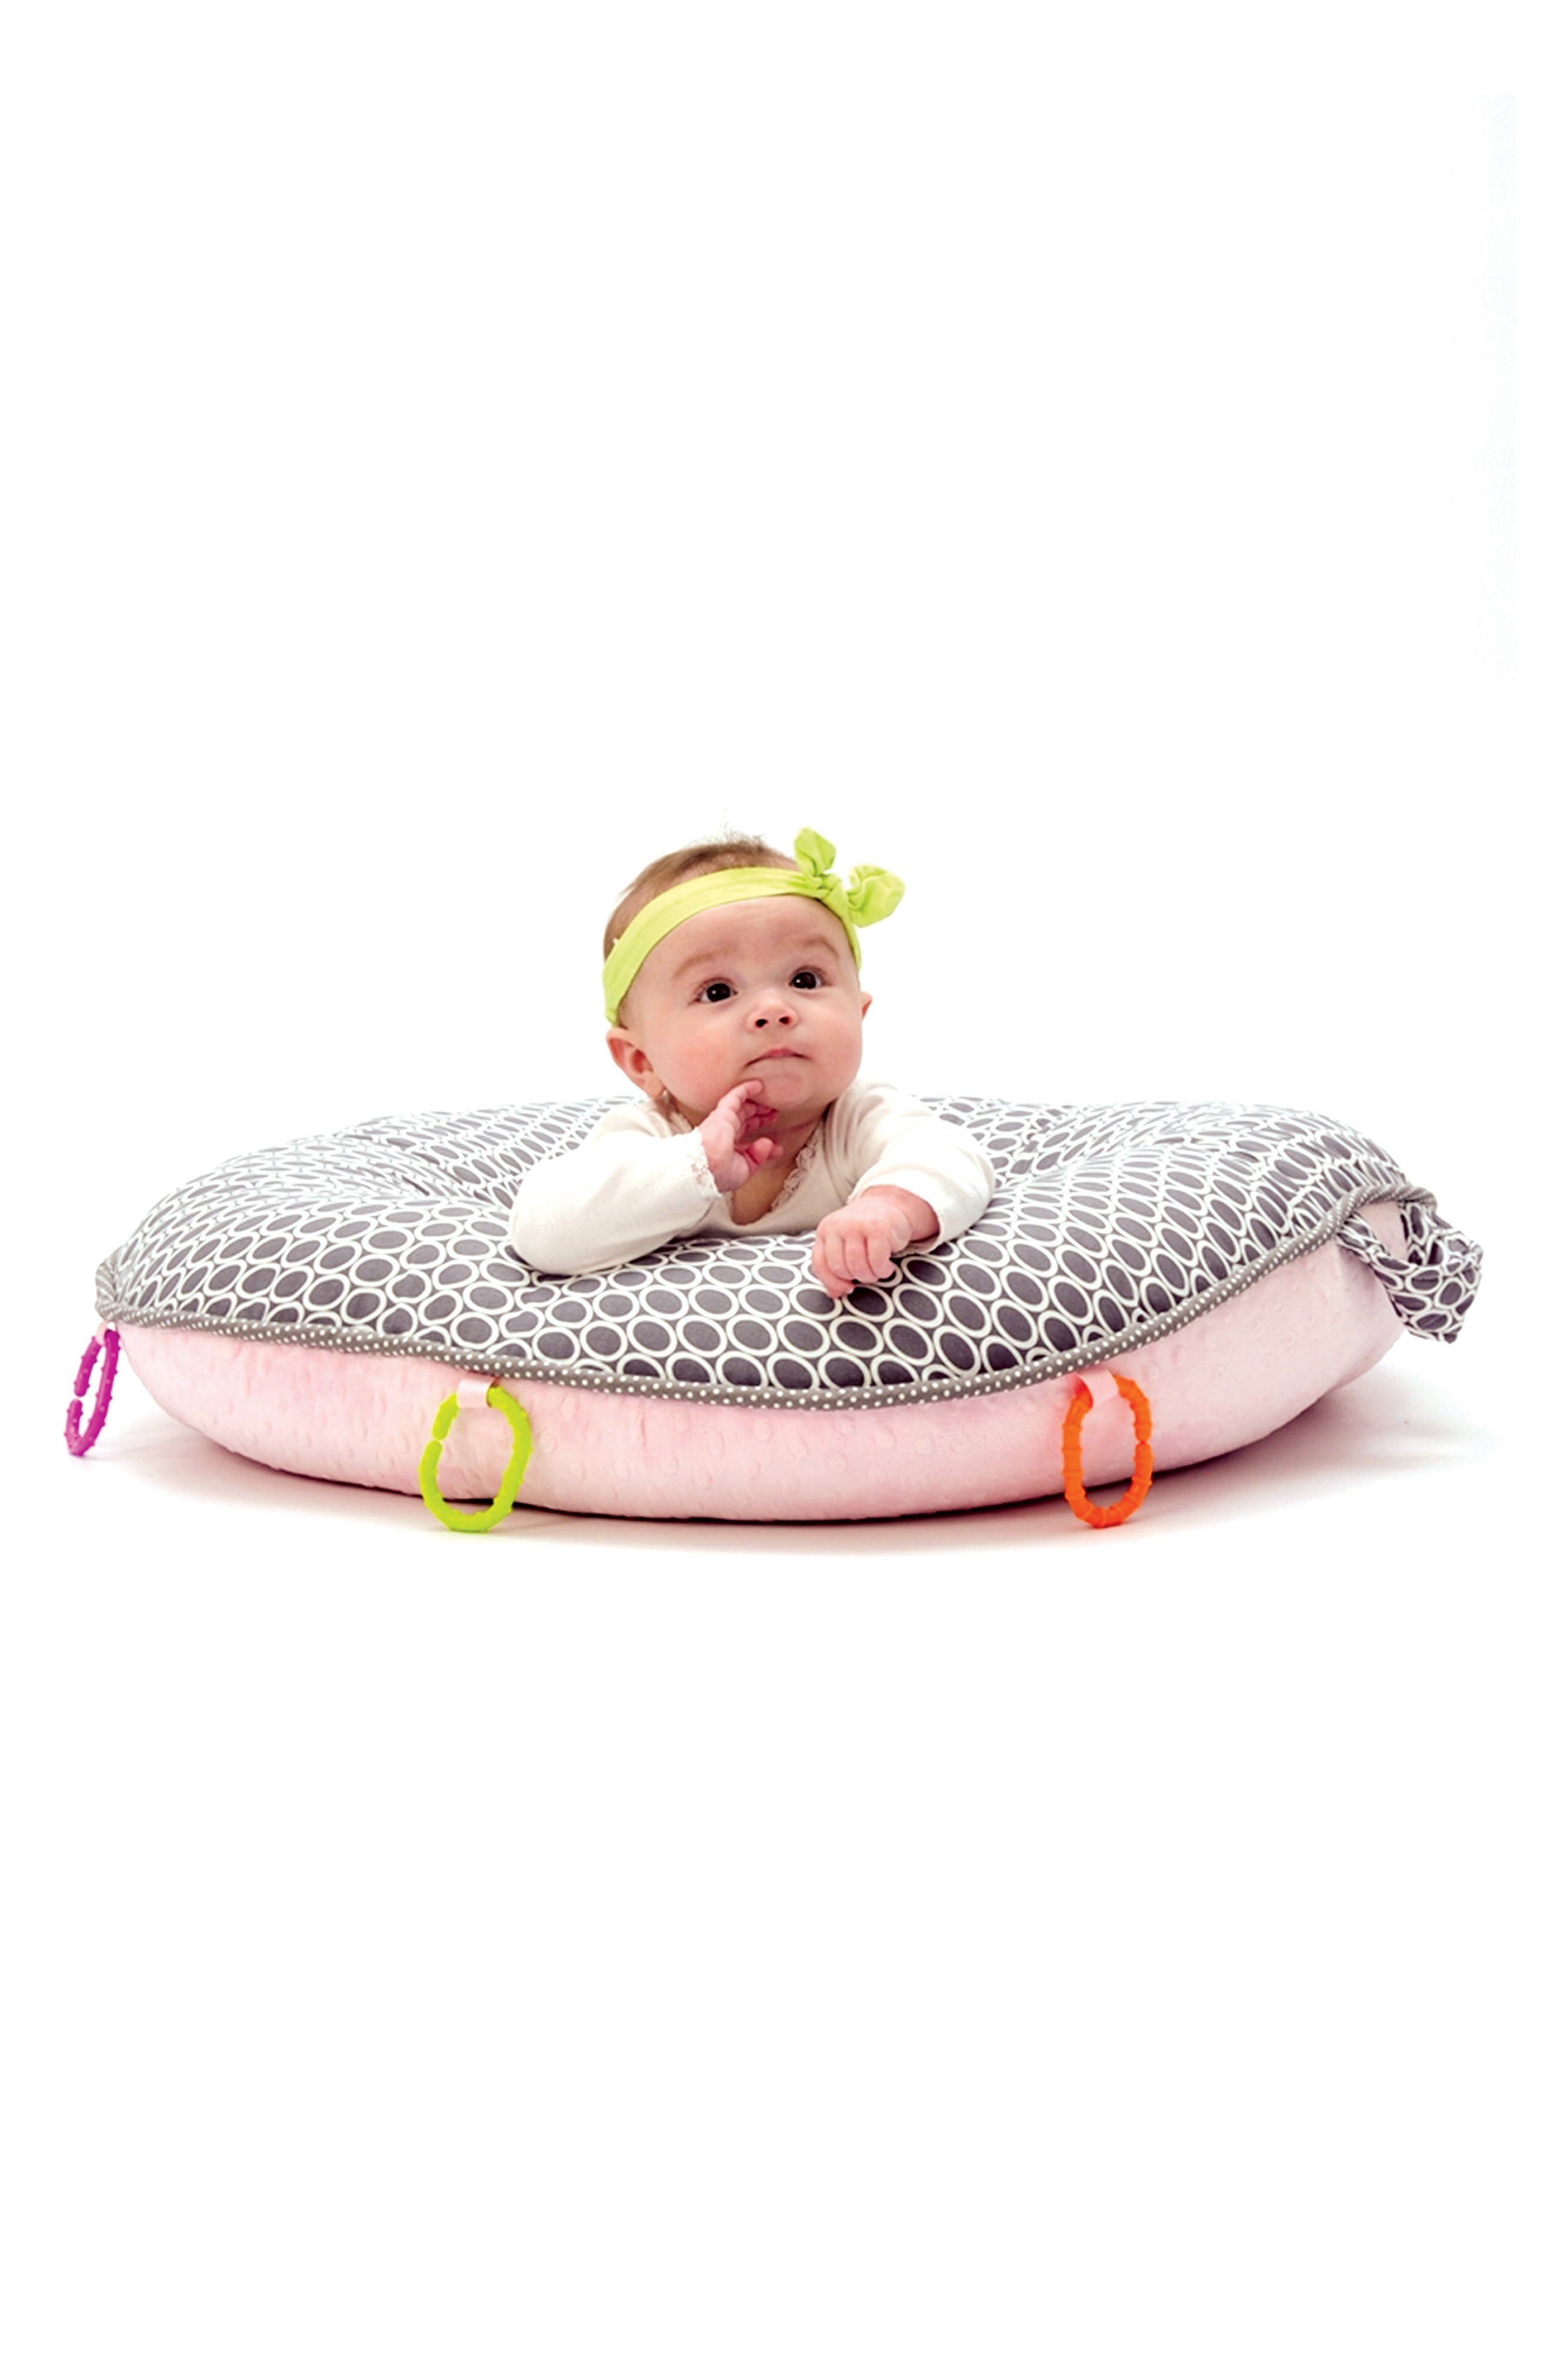 101216100 - 17 Ideas To Organize Your Own Baby Floor Cushion